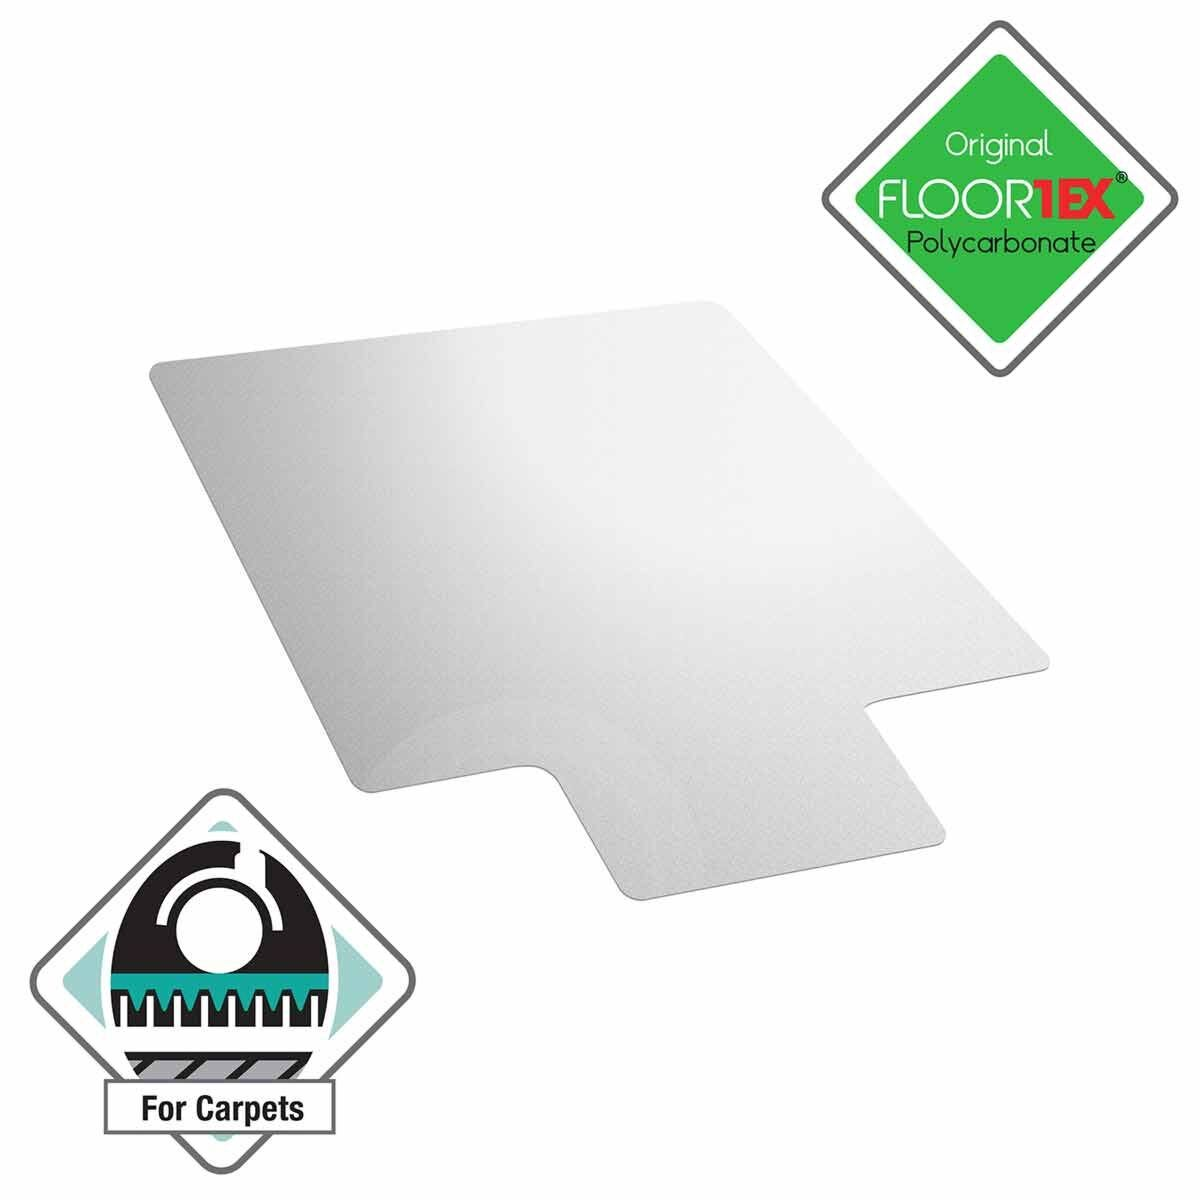 Cleartex Ultimat Chair Mat for Low and Medium Pile Carpets Rectangular with Lip 119 x 89cm